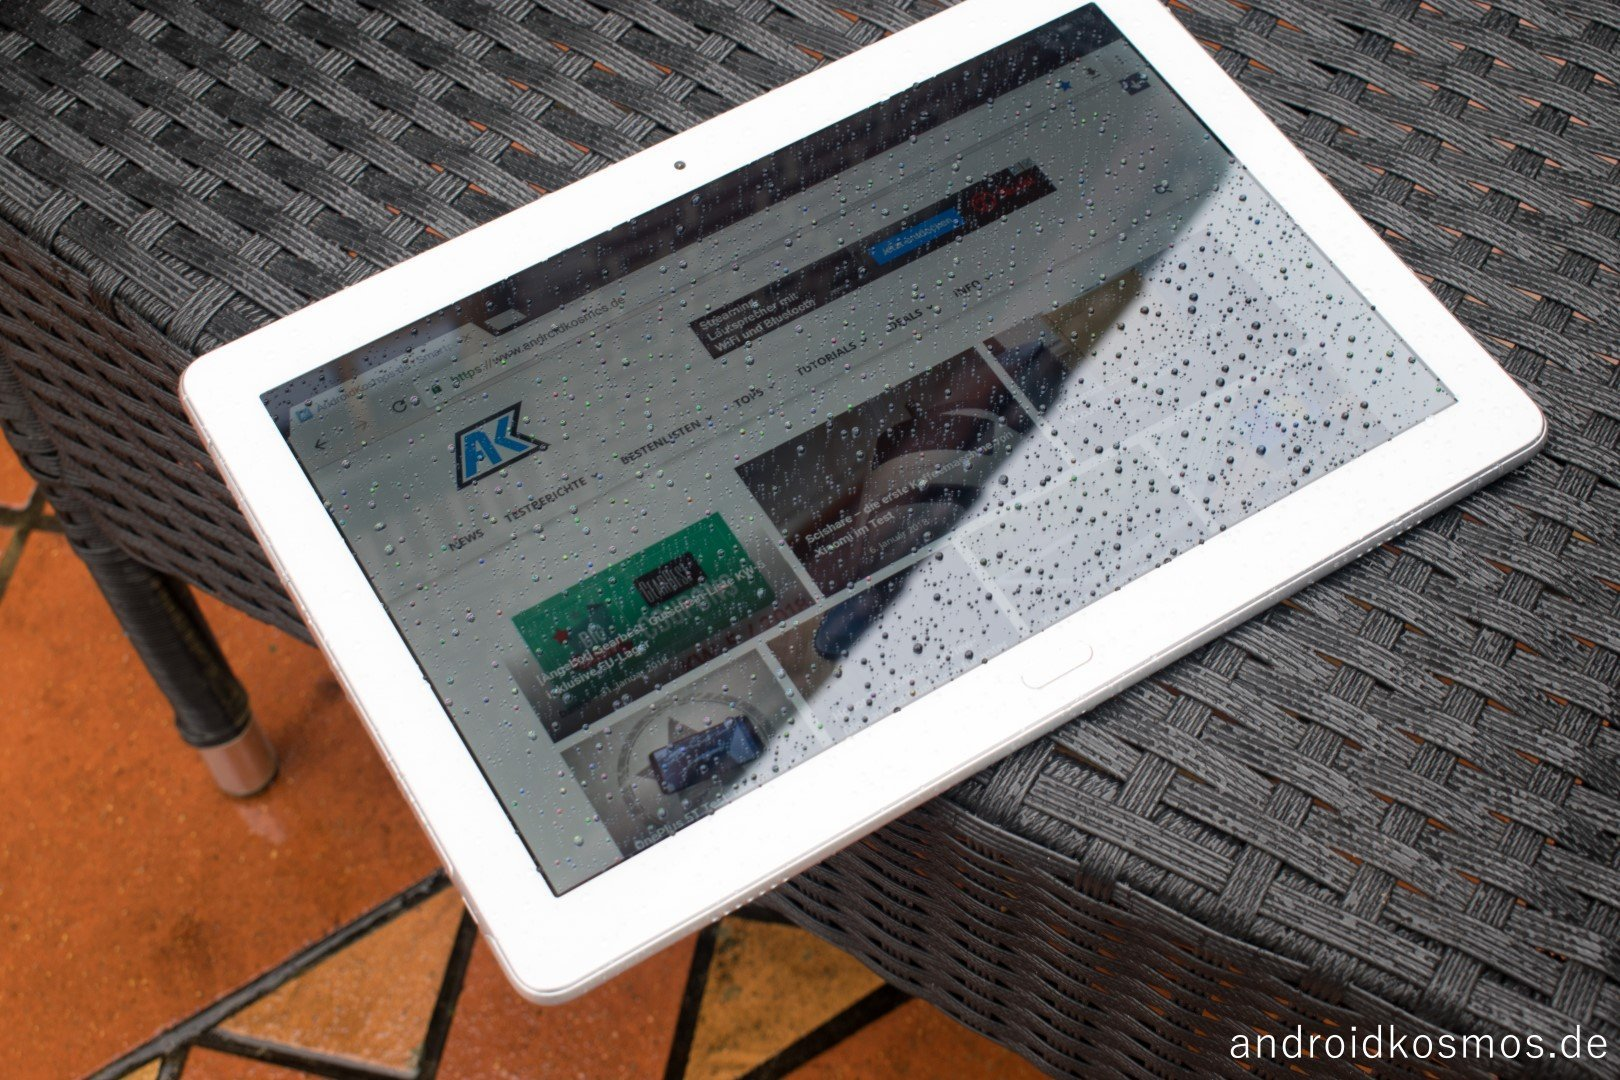 AndroidKosmos Honor Waterplay 2104